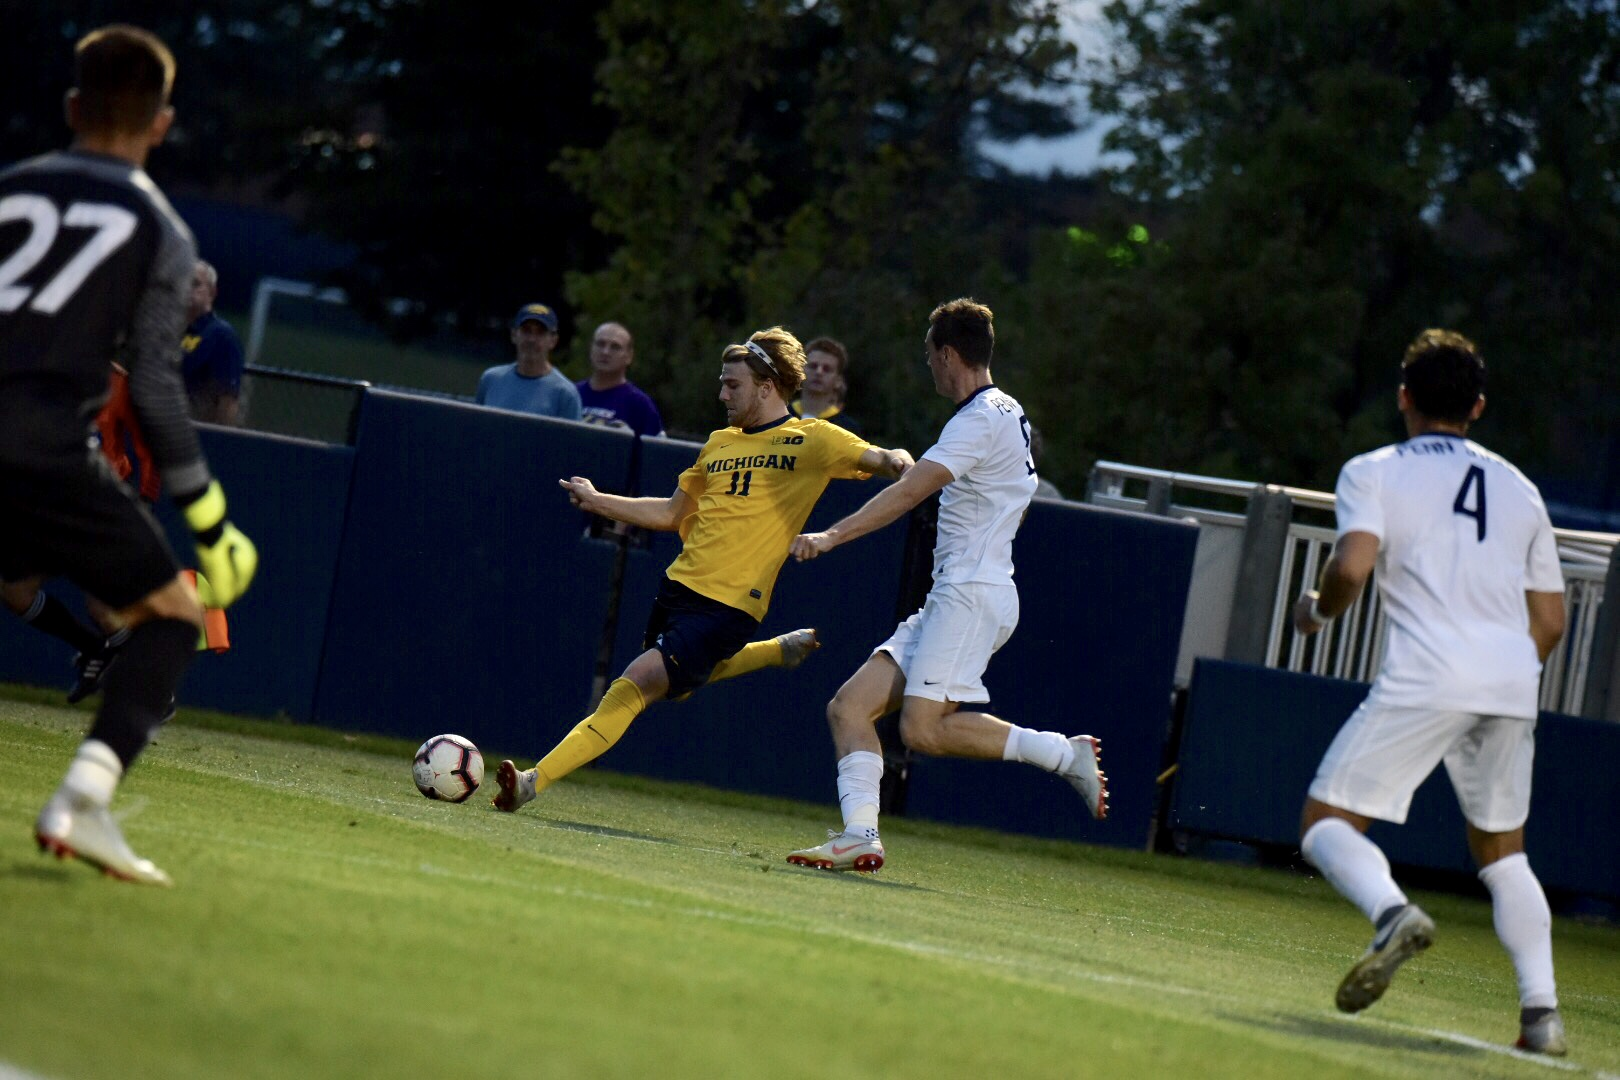 Jack Hallahan was locked in a key battle with star IU left back Andrew Gutman.